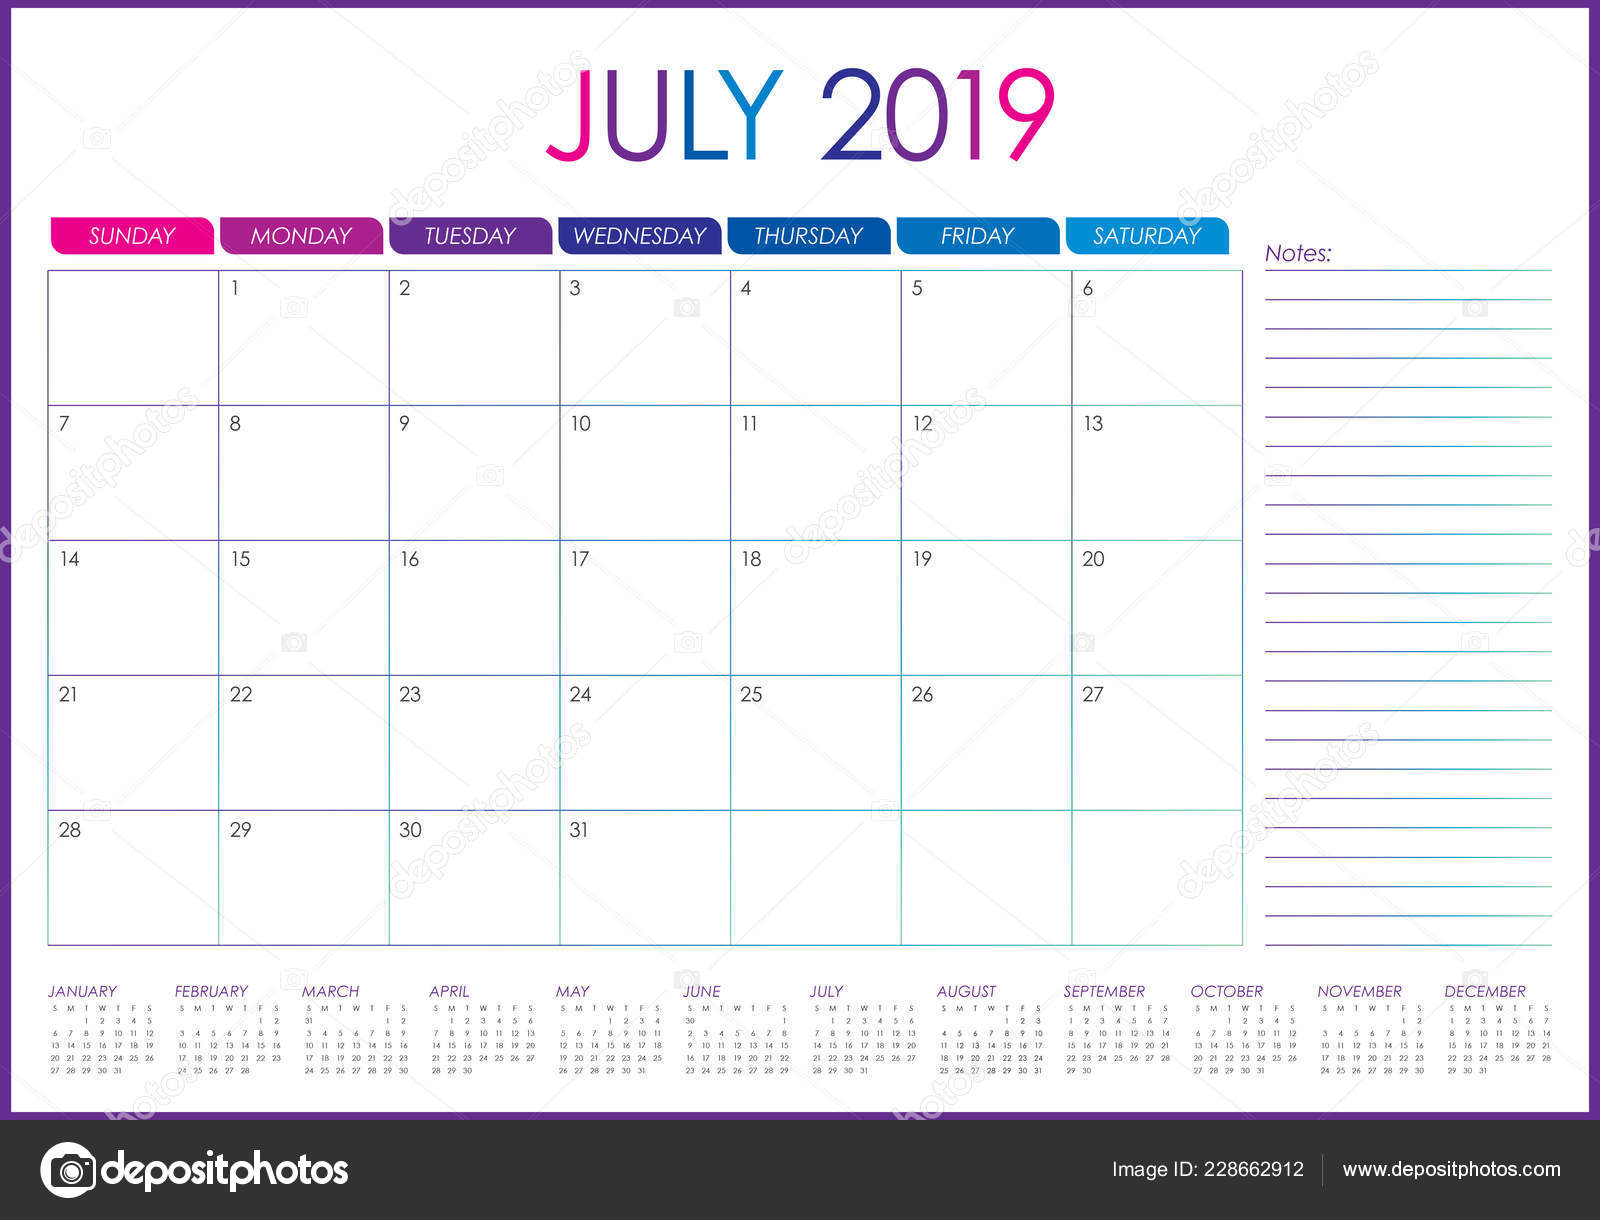 Calendario Julio 2019 Vector.July 2019 Desk Calendar Vector Illustration Simple Clean